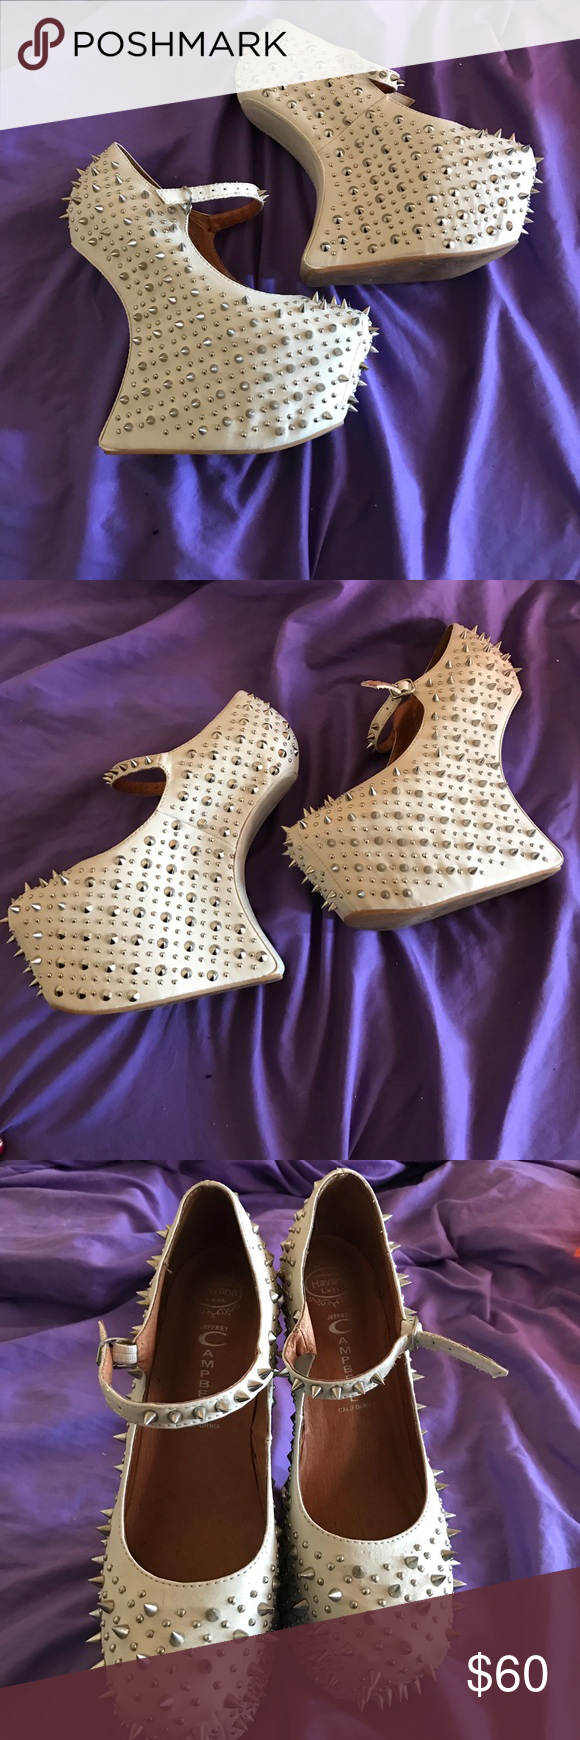 Jeffery Campbell prickly night walks size 8 Very unique pair of Jeffery Campbell night walks in beige.  They are a size 8. Jeffrey Campbell Shoes Ankle Boots & Booties